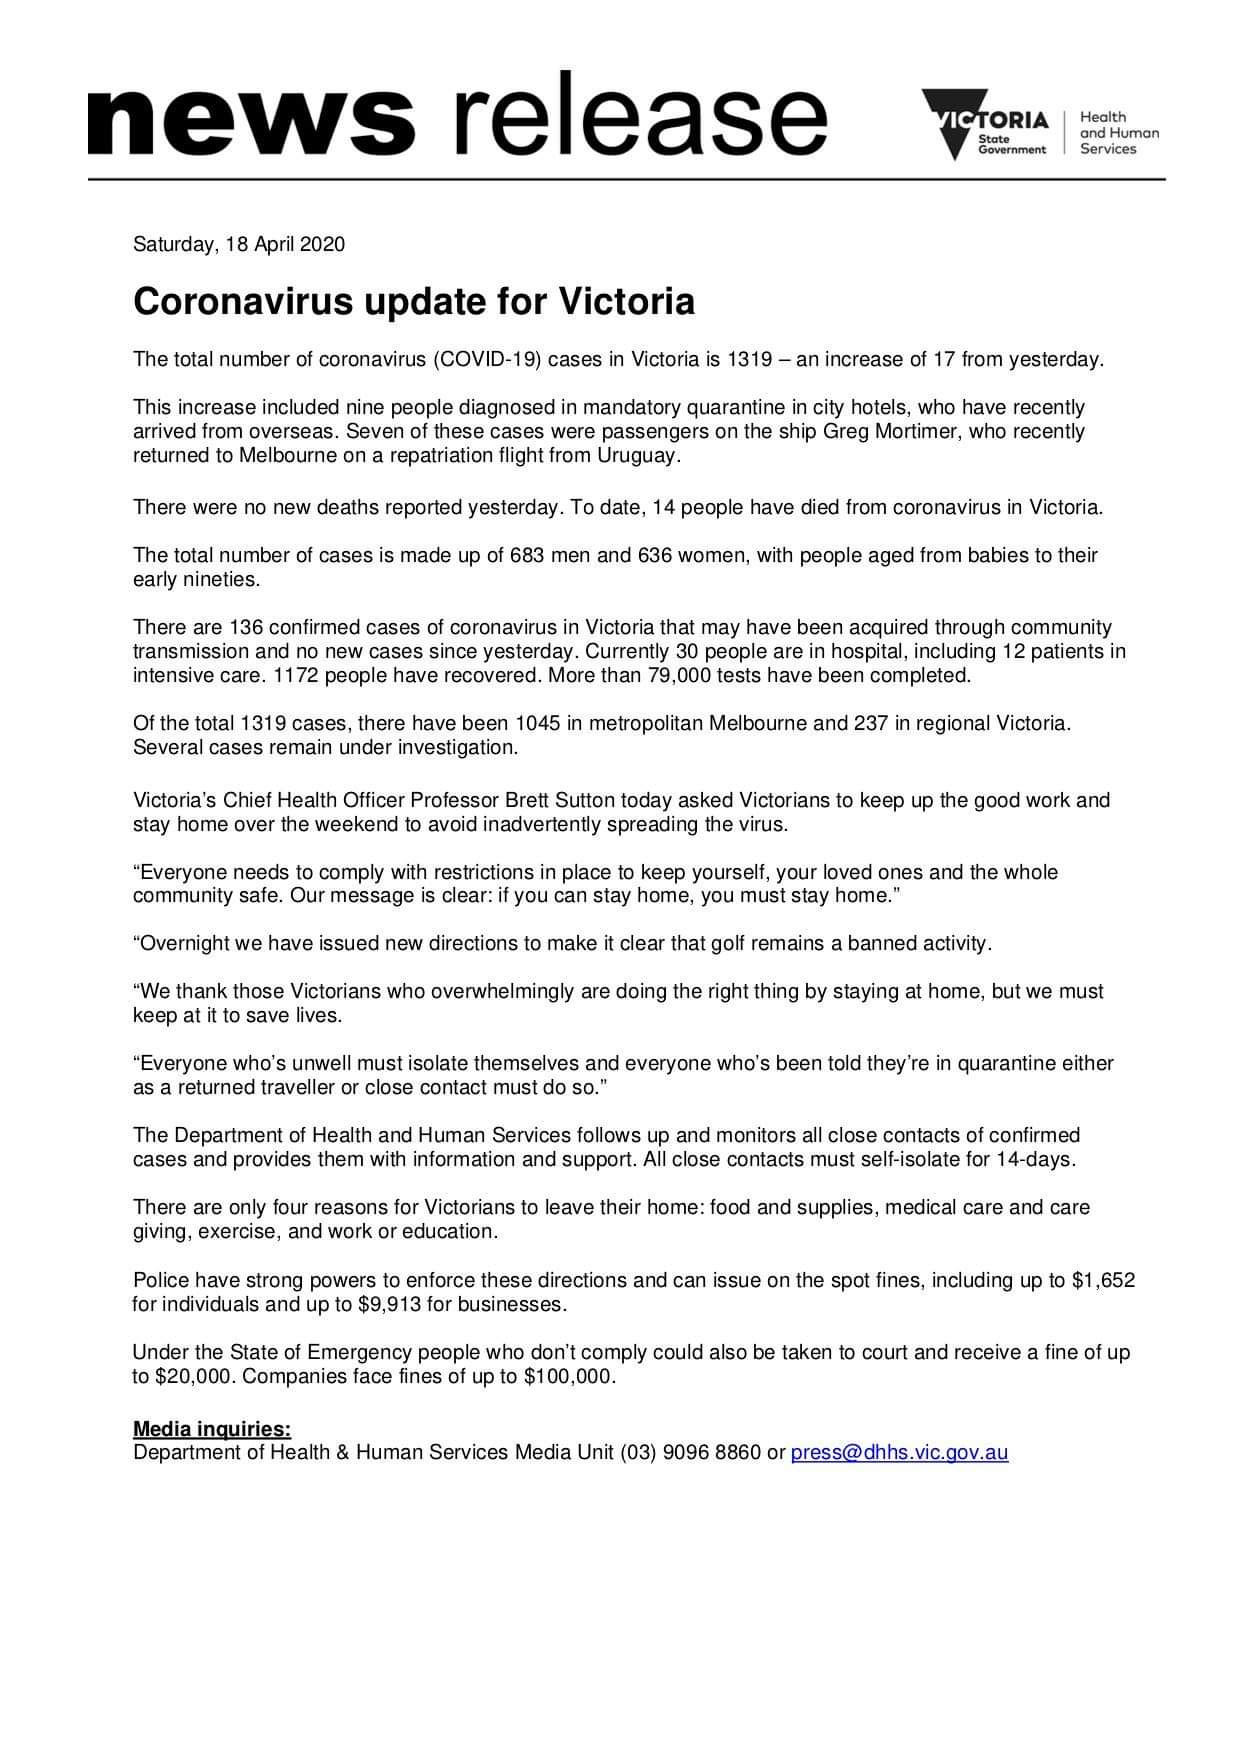 Latest update on COVID-19 for Victoria